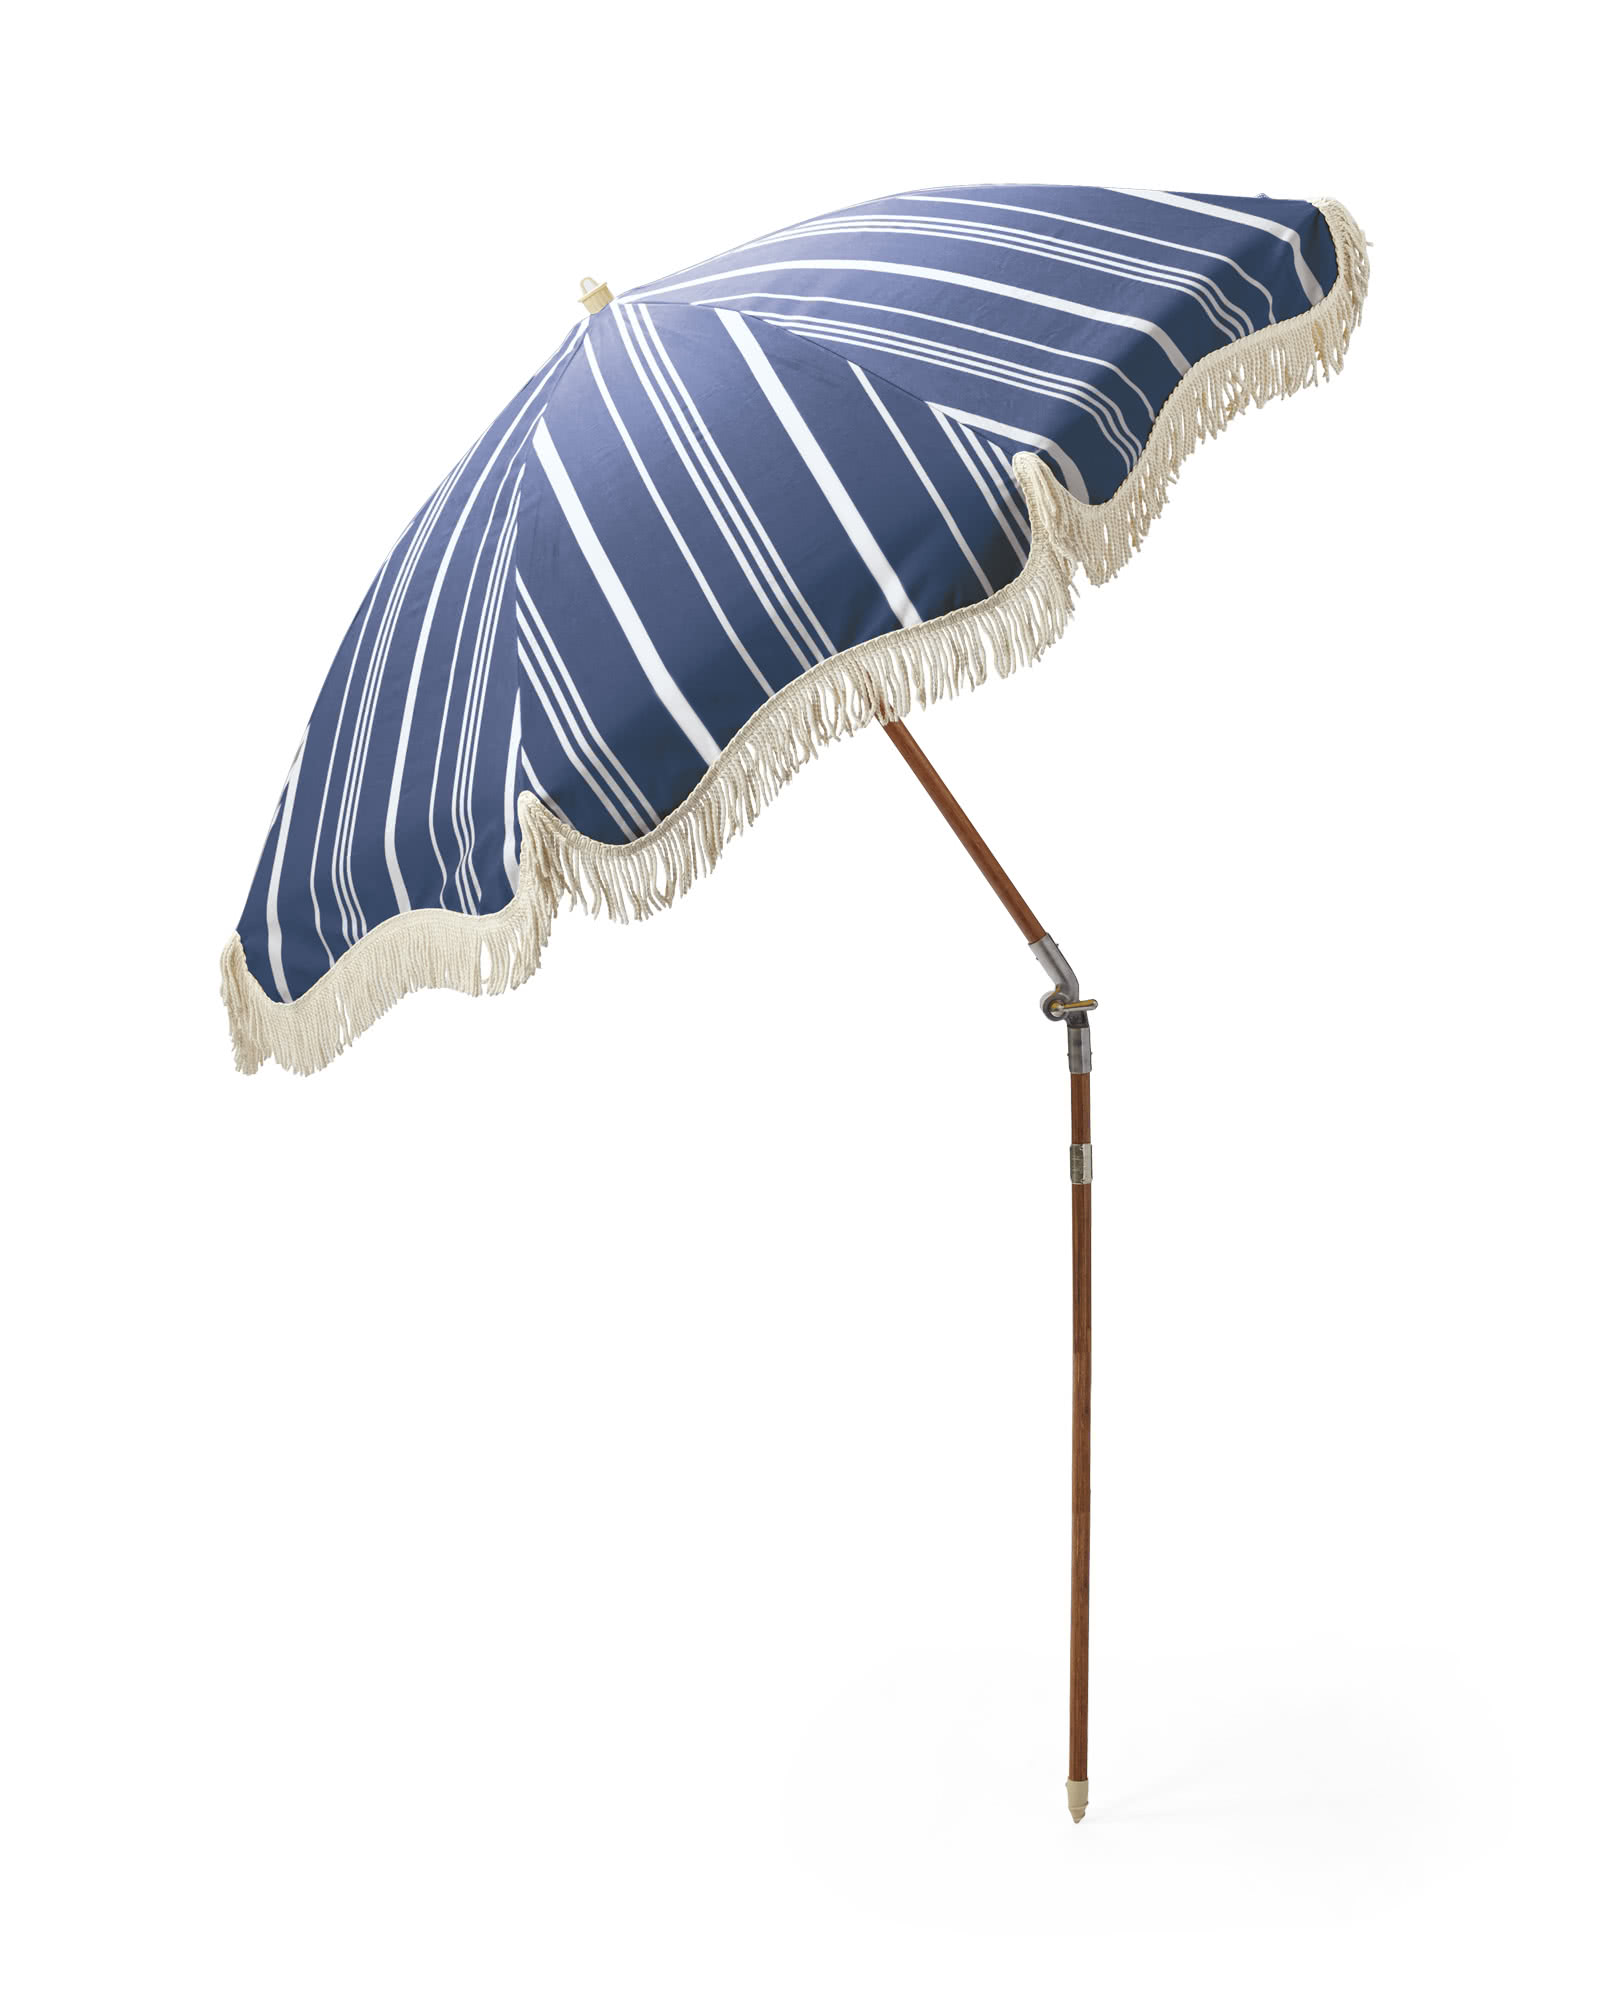 Pembroke Beach Umbrella,